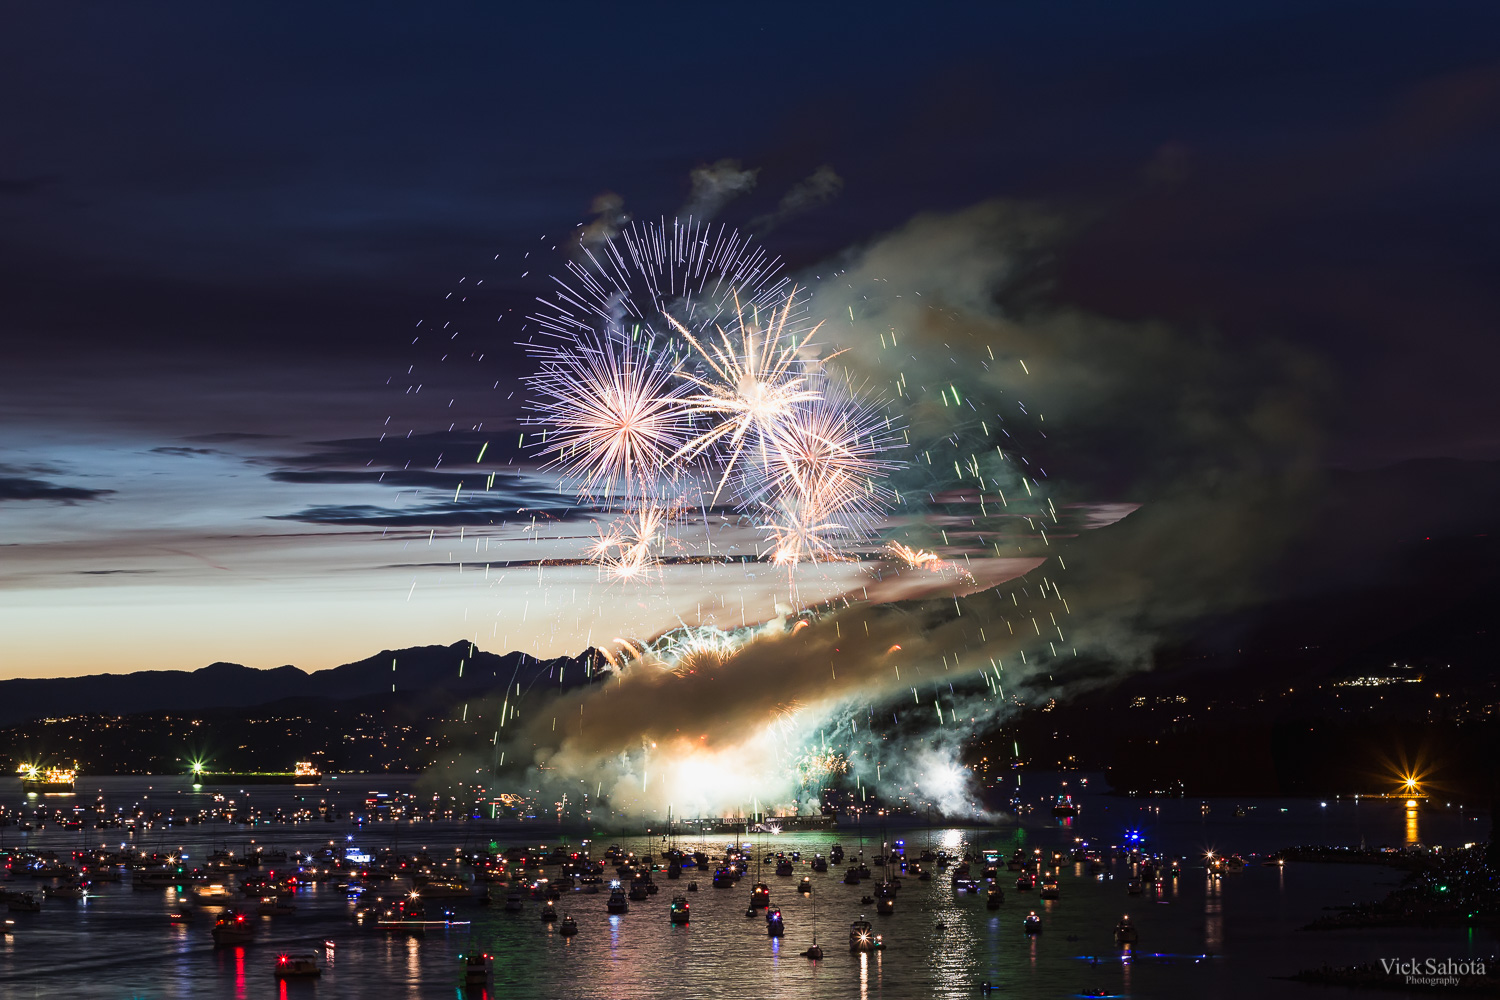 Canada Celebration of Light Fireworks (The smoke kind of reminds me of a dragon for some reason)!